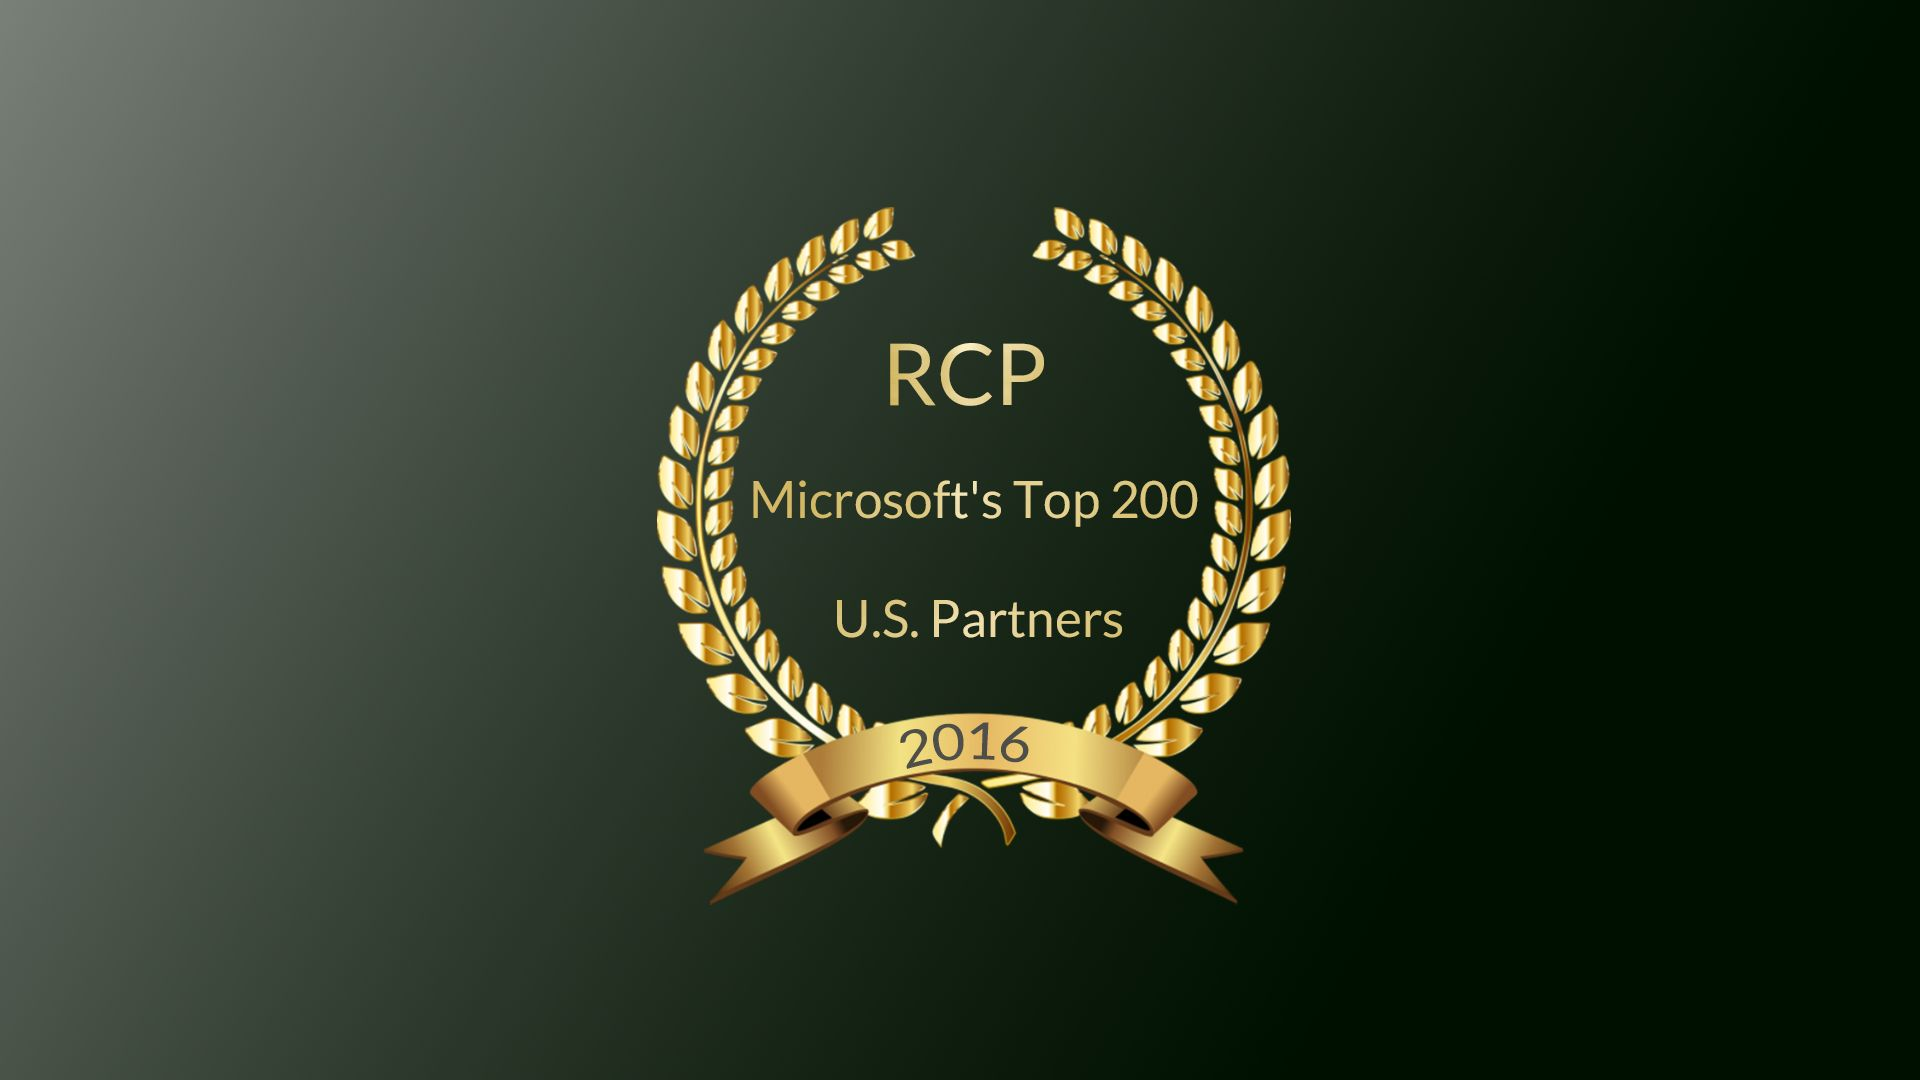 Endsight Named as a Top Microsoft Partner According to RCP Magazine